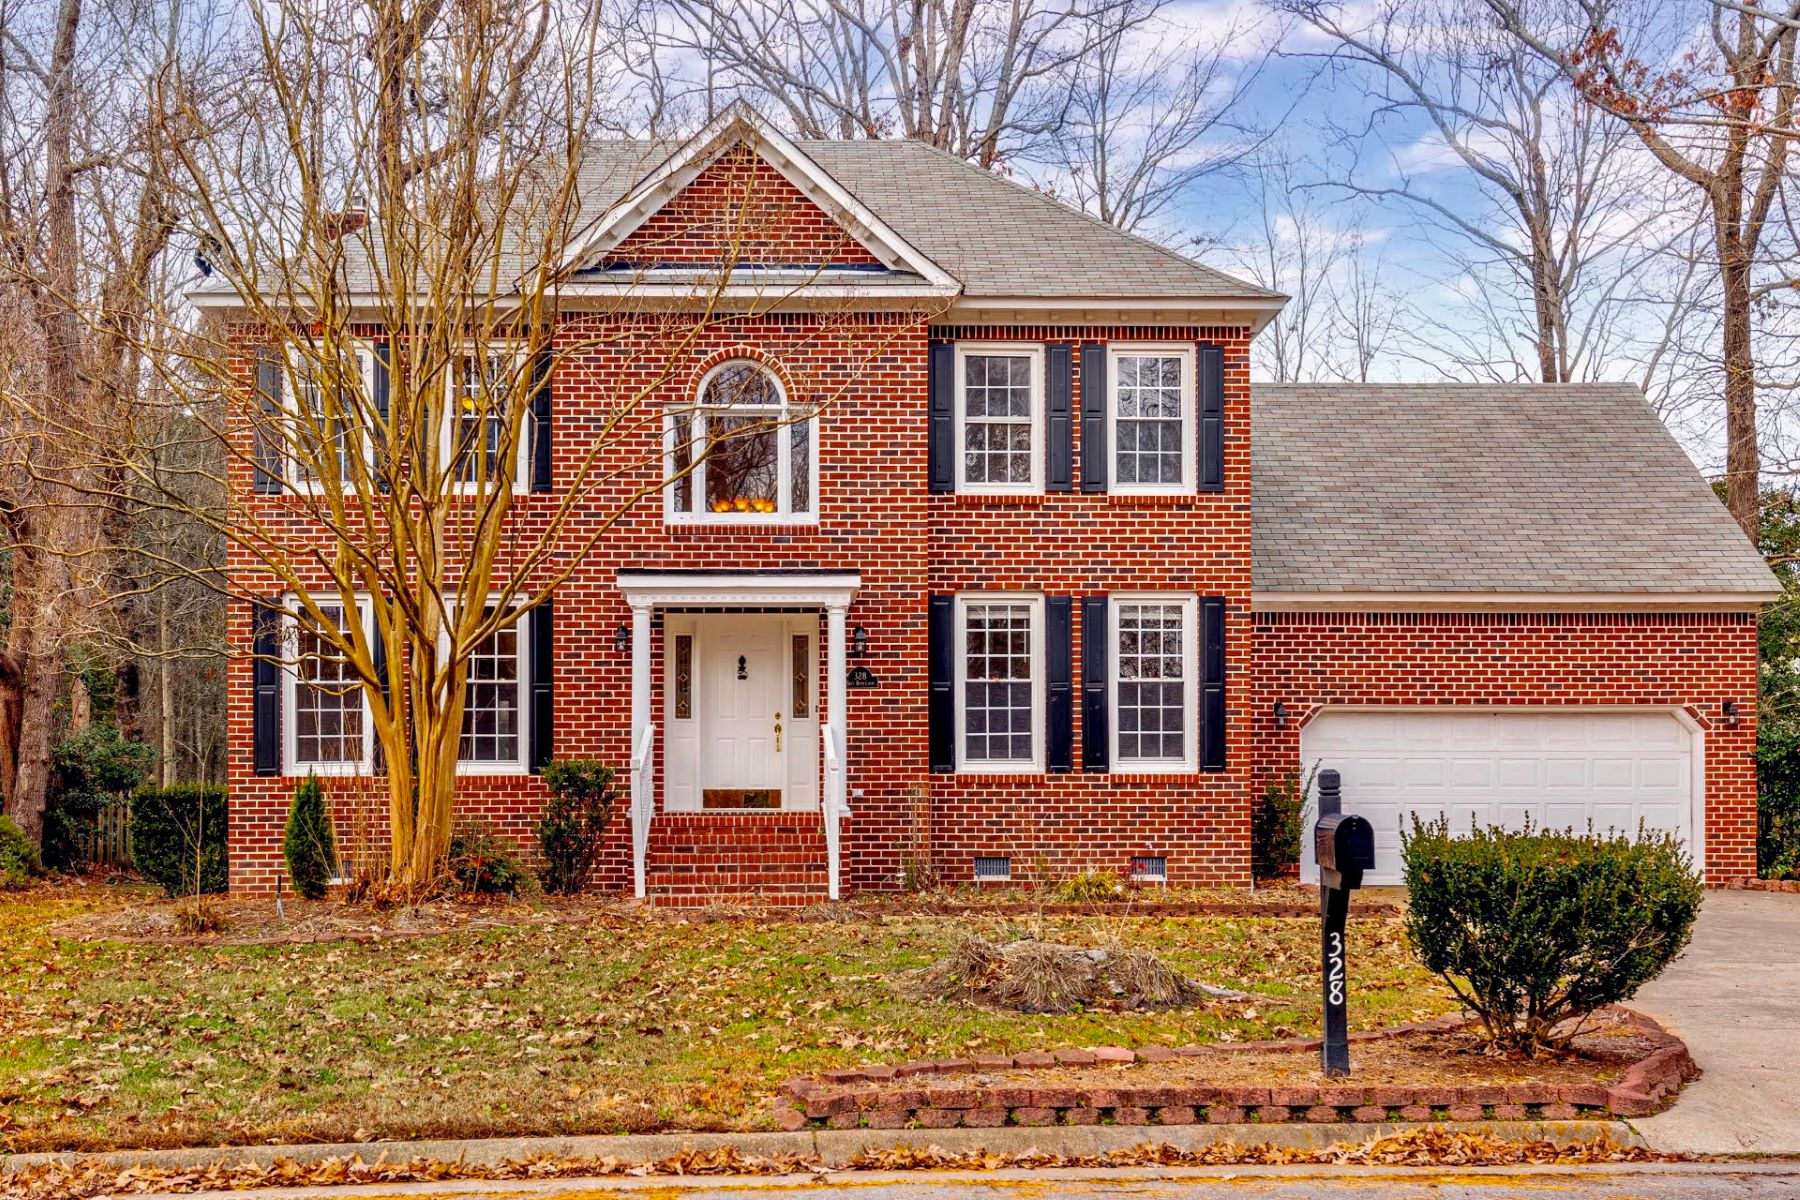 Single Family Homes for Active at RIVERWALK 328 Spice Bush Court Chesapeake, Virginia 23320 United States